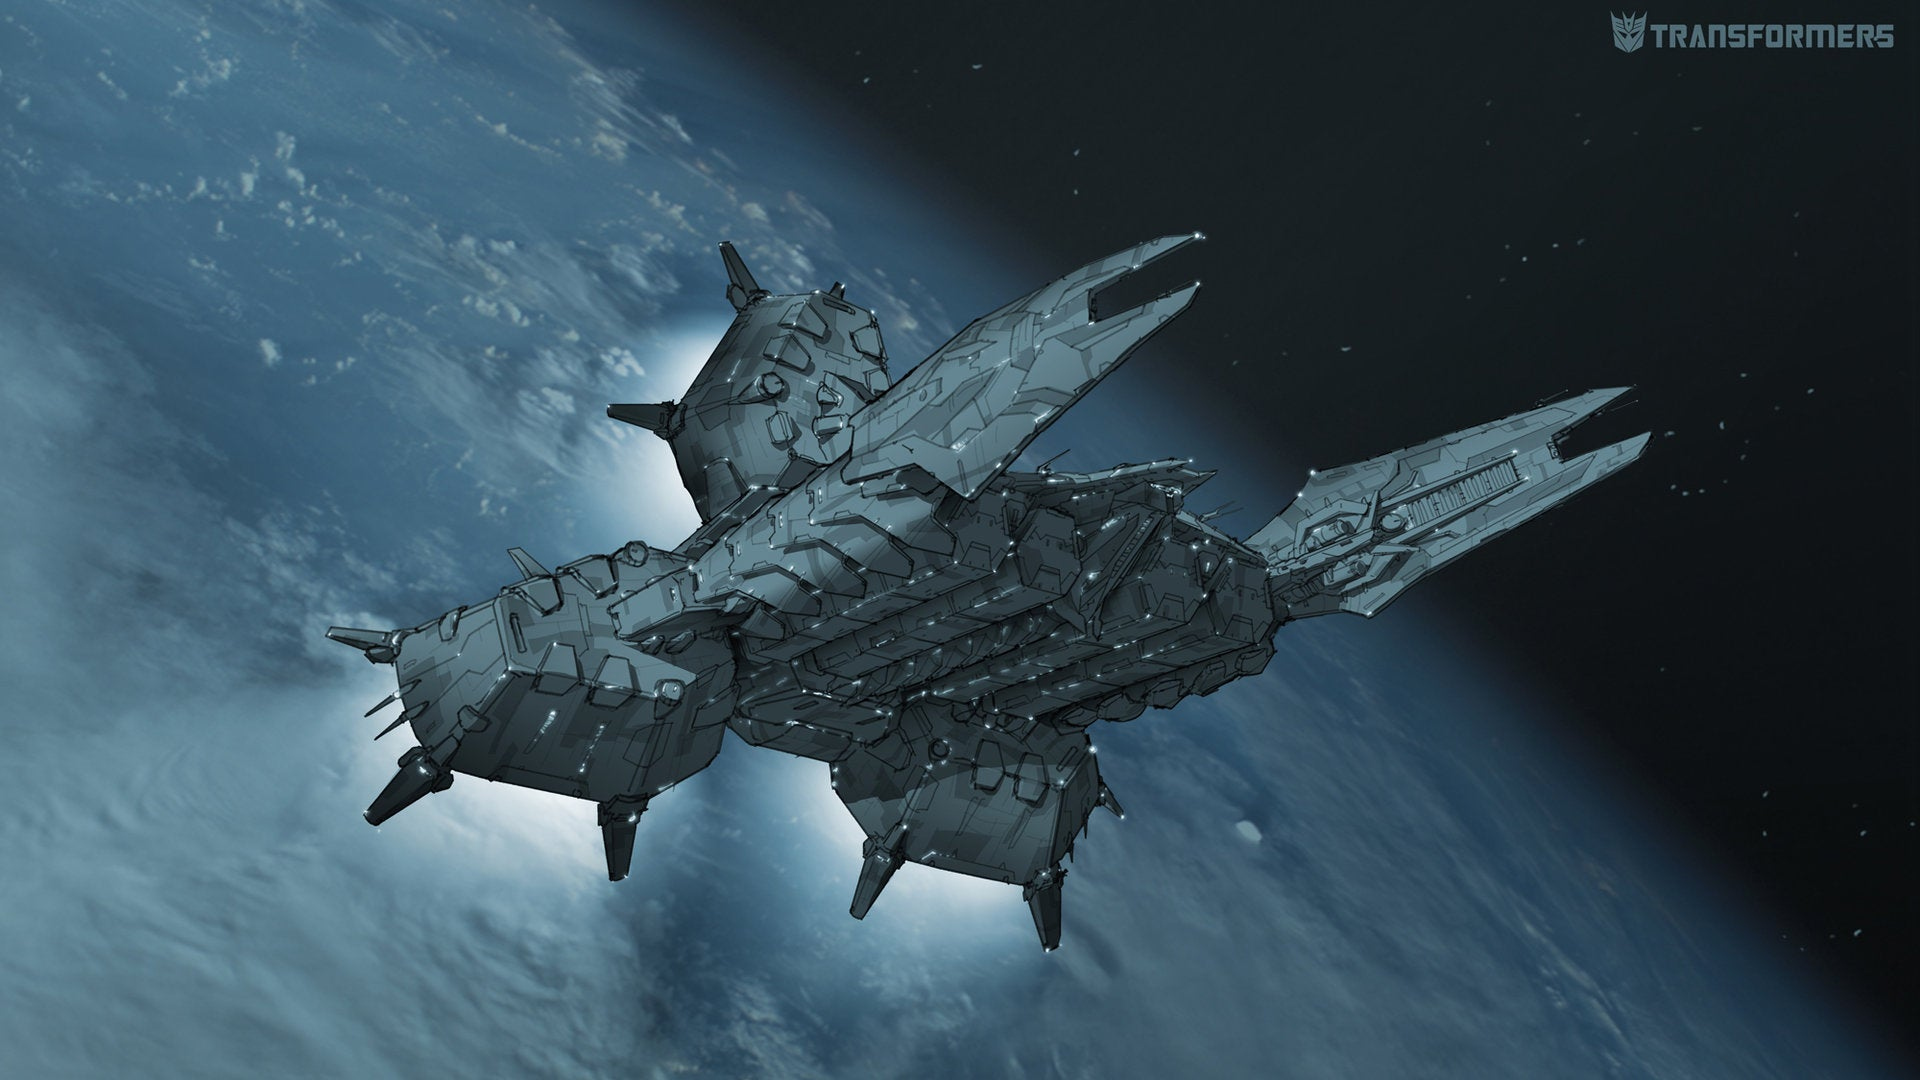 There Is No Greater Spacecraft Than The SDF-1